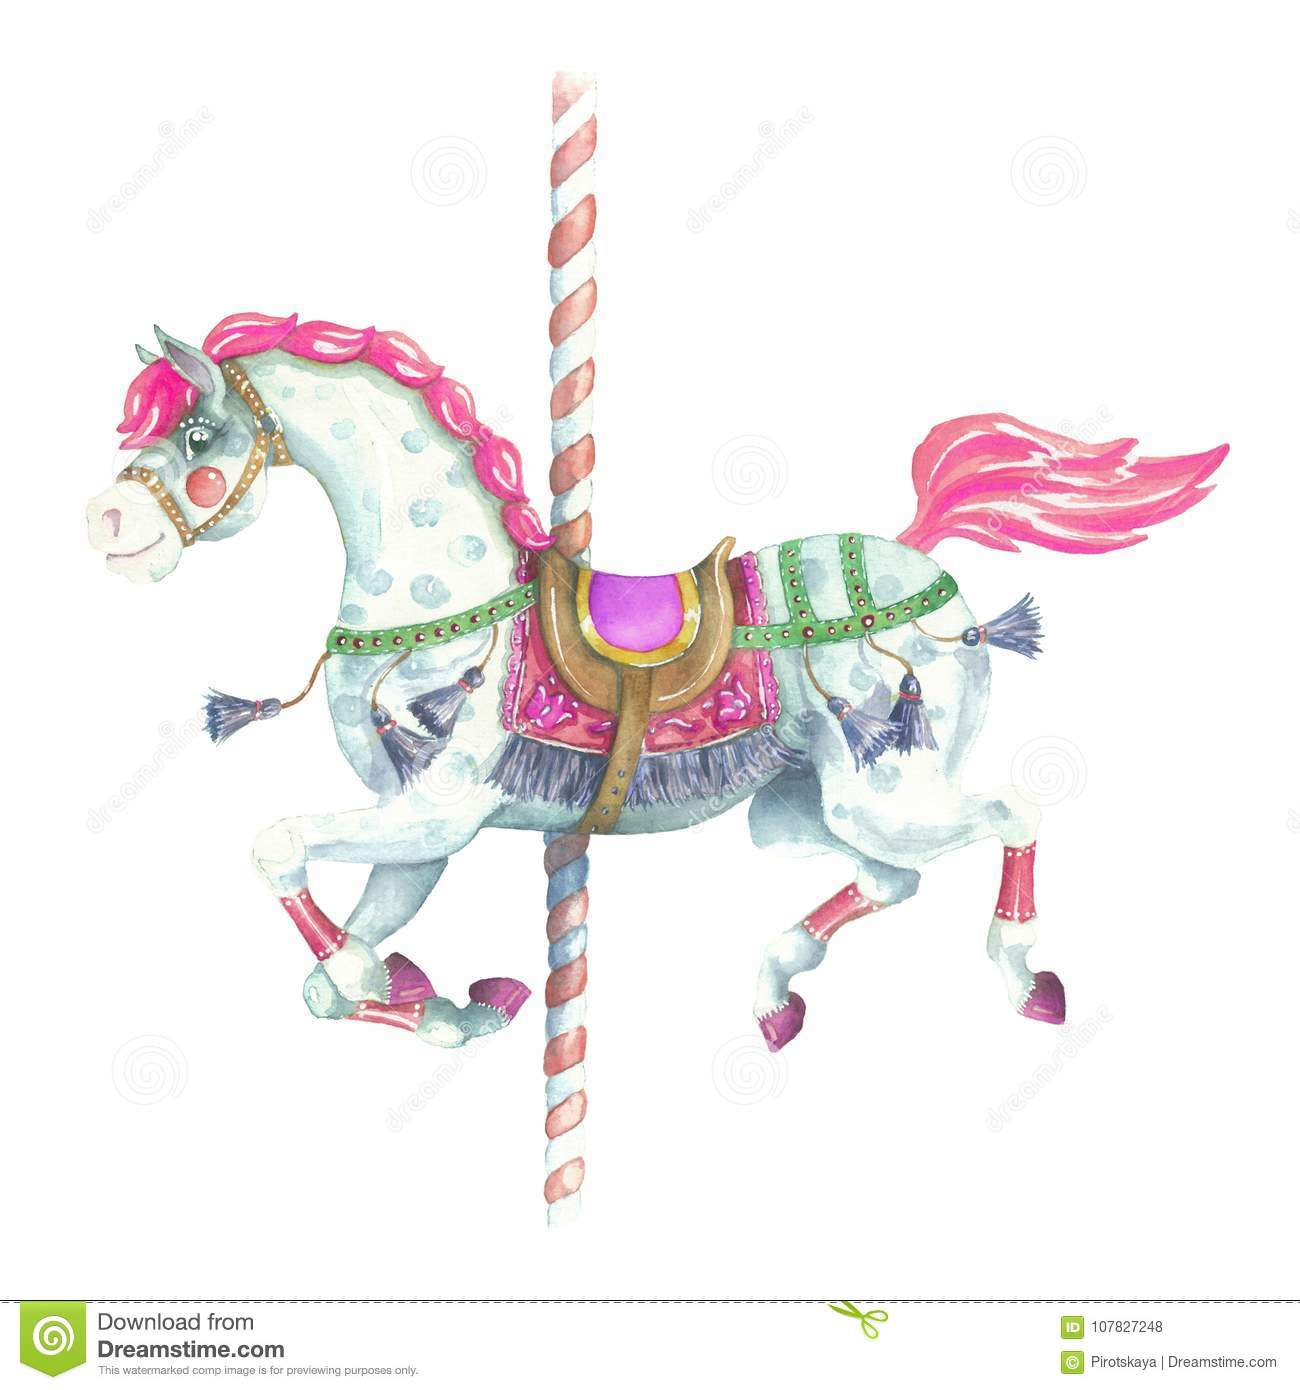 Watercolor Running Purple Carousel Horse Stock Illustration Illustration Of Freehand Merrygoround 107827248